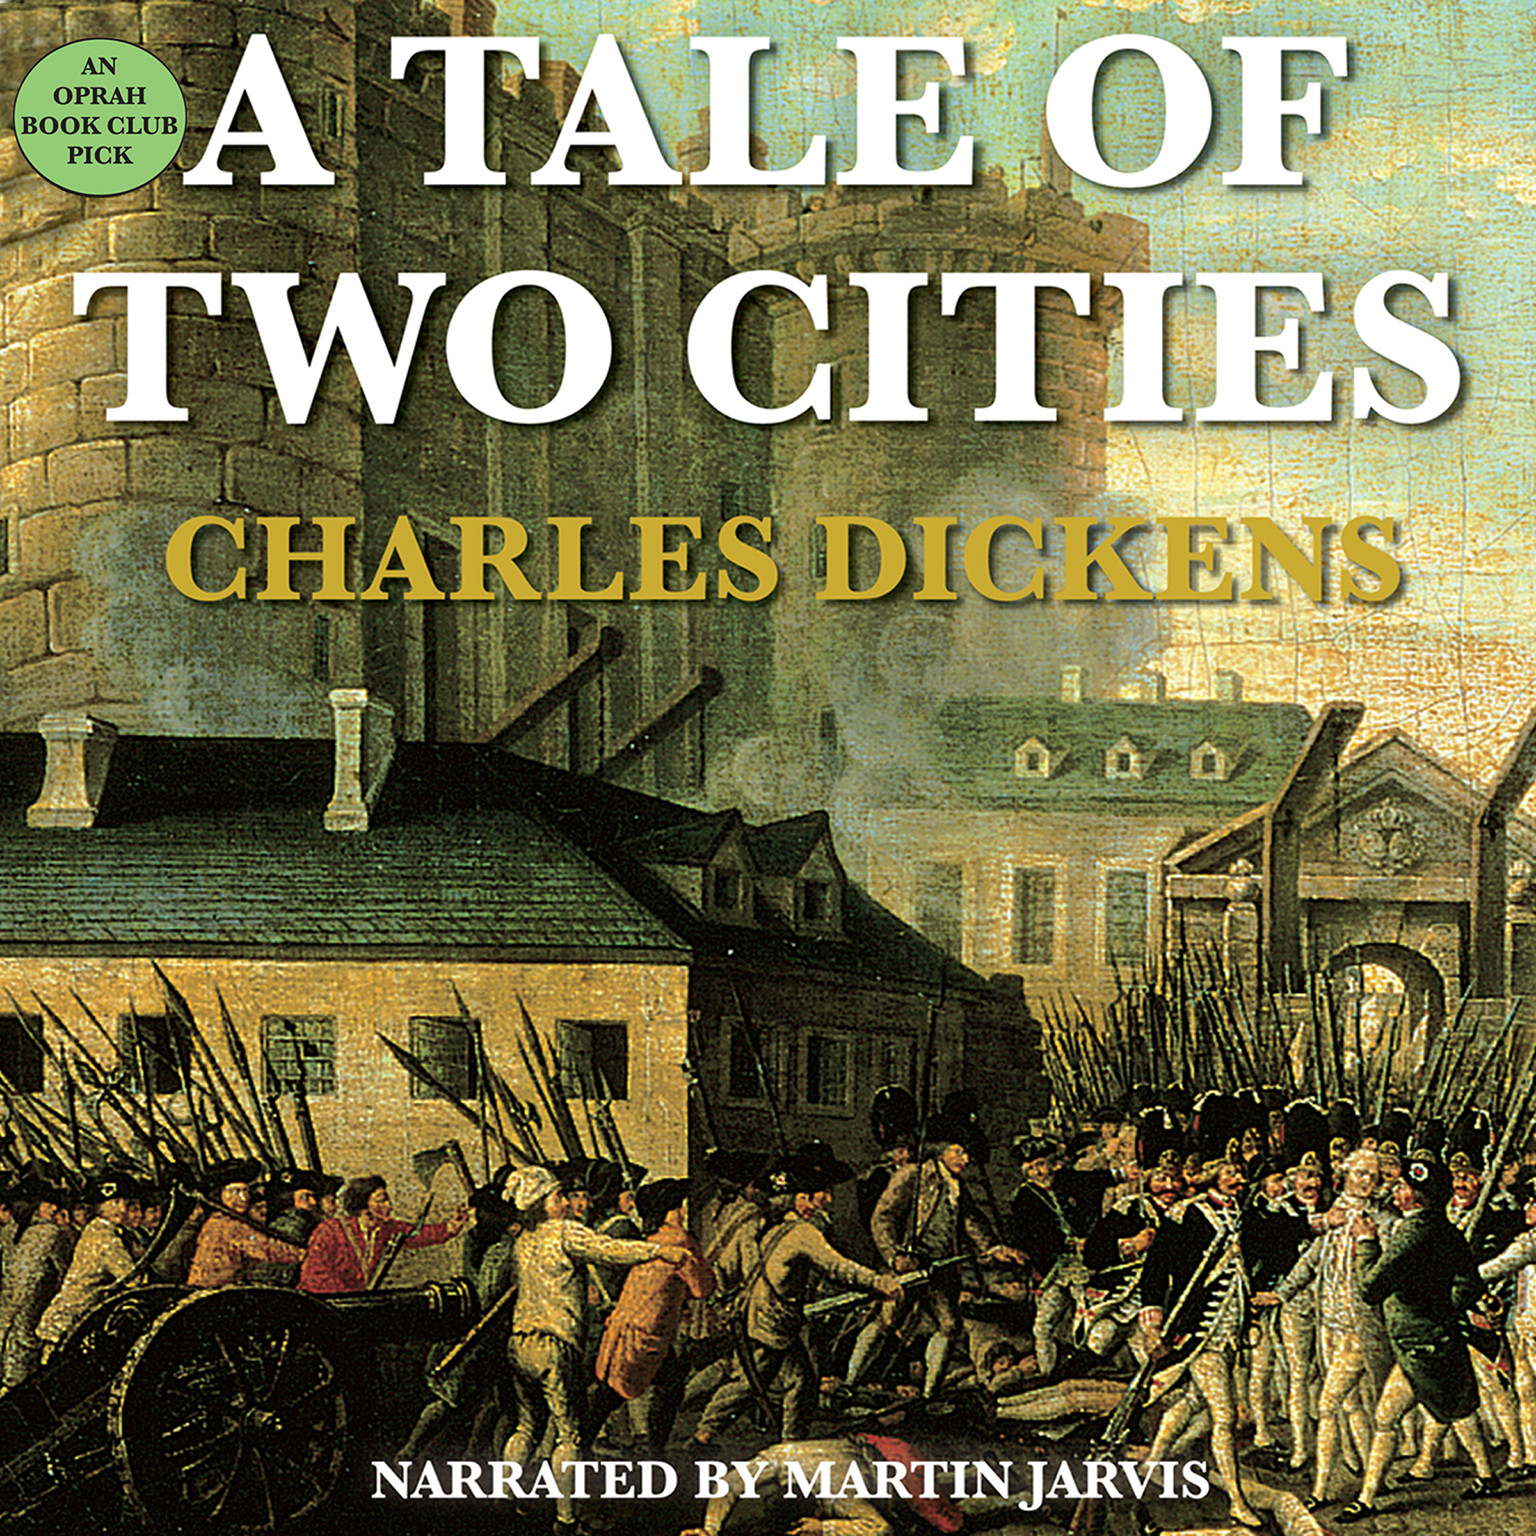 Employment Administration Montana Tech Download A Tale Of Two Cities Audiobook By Charles Dickens